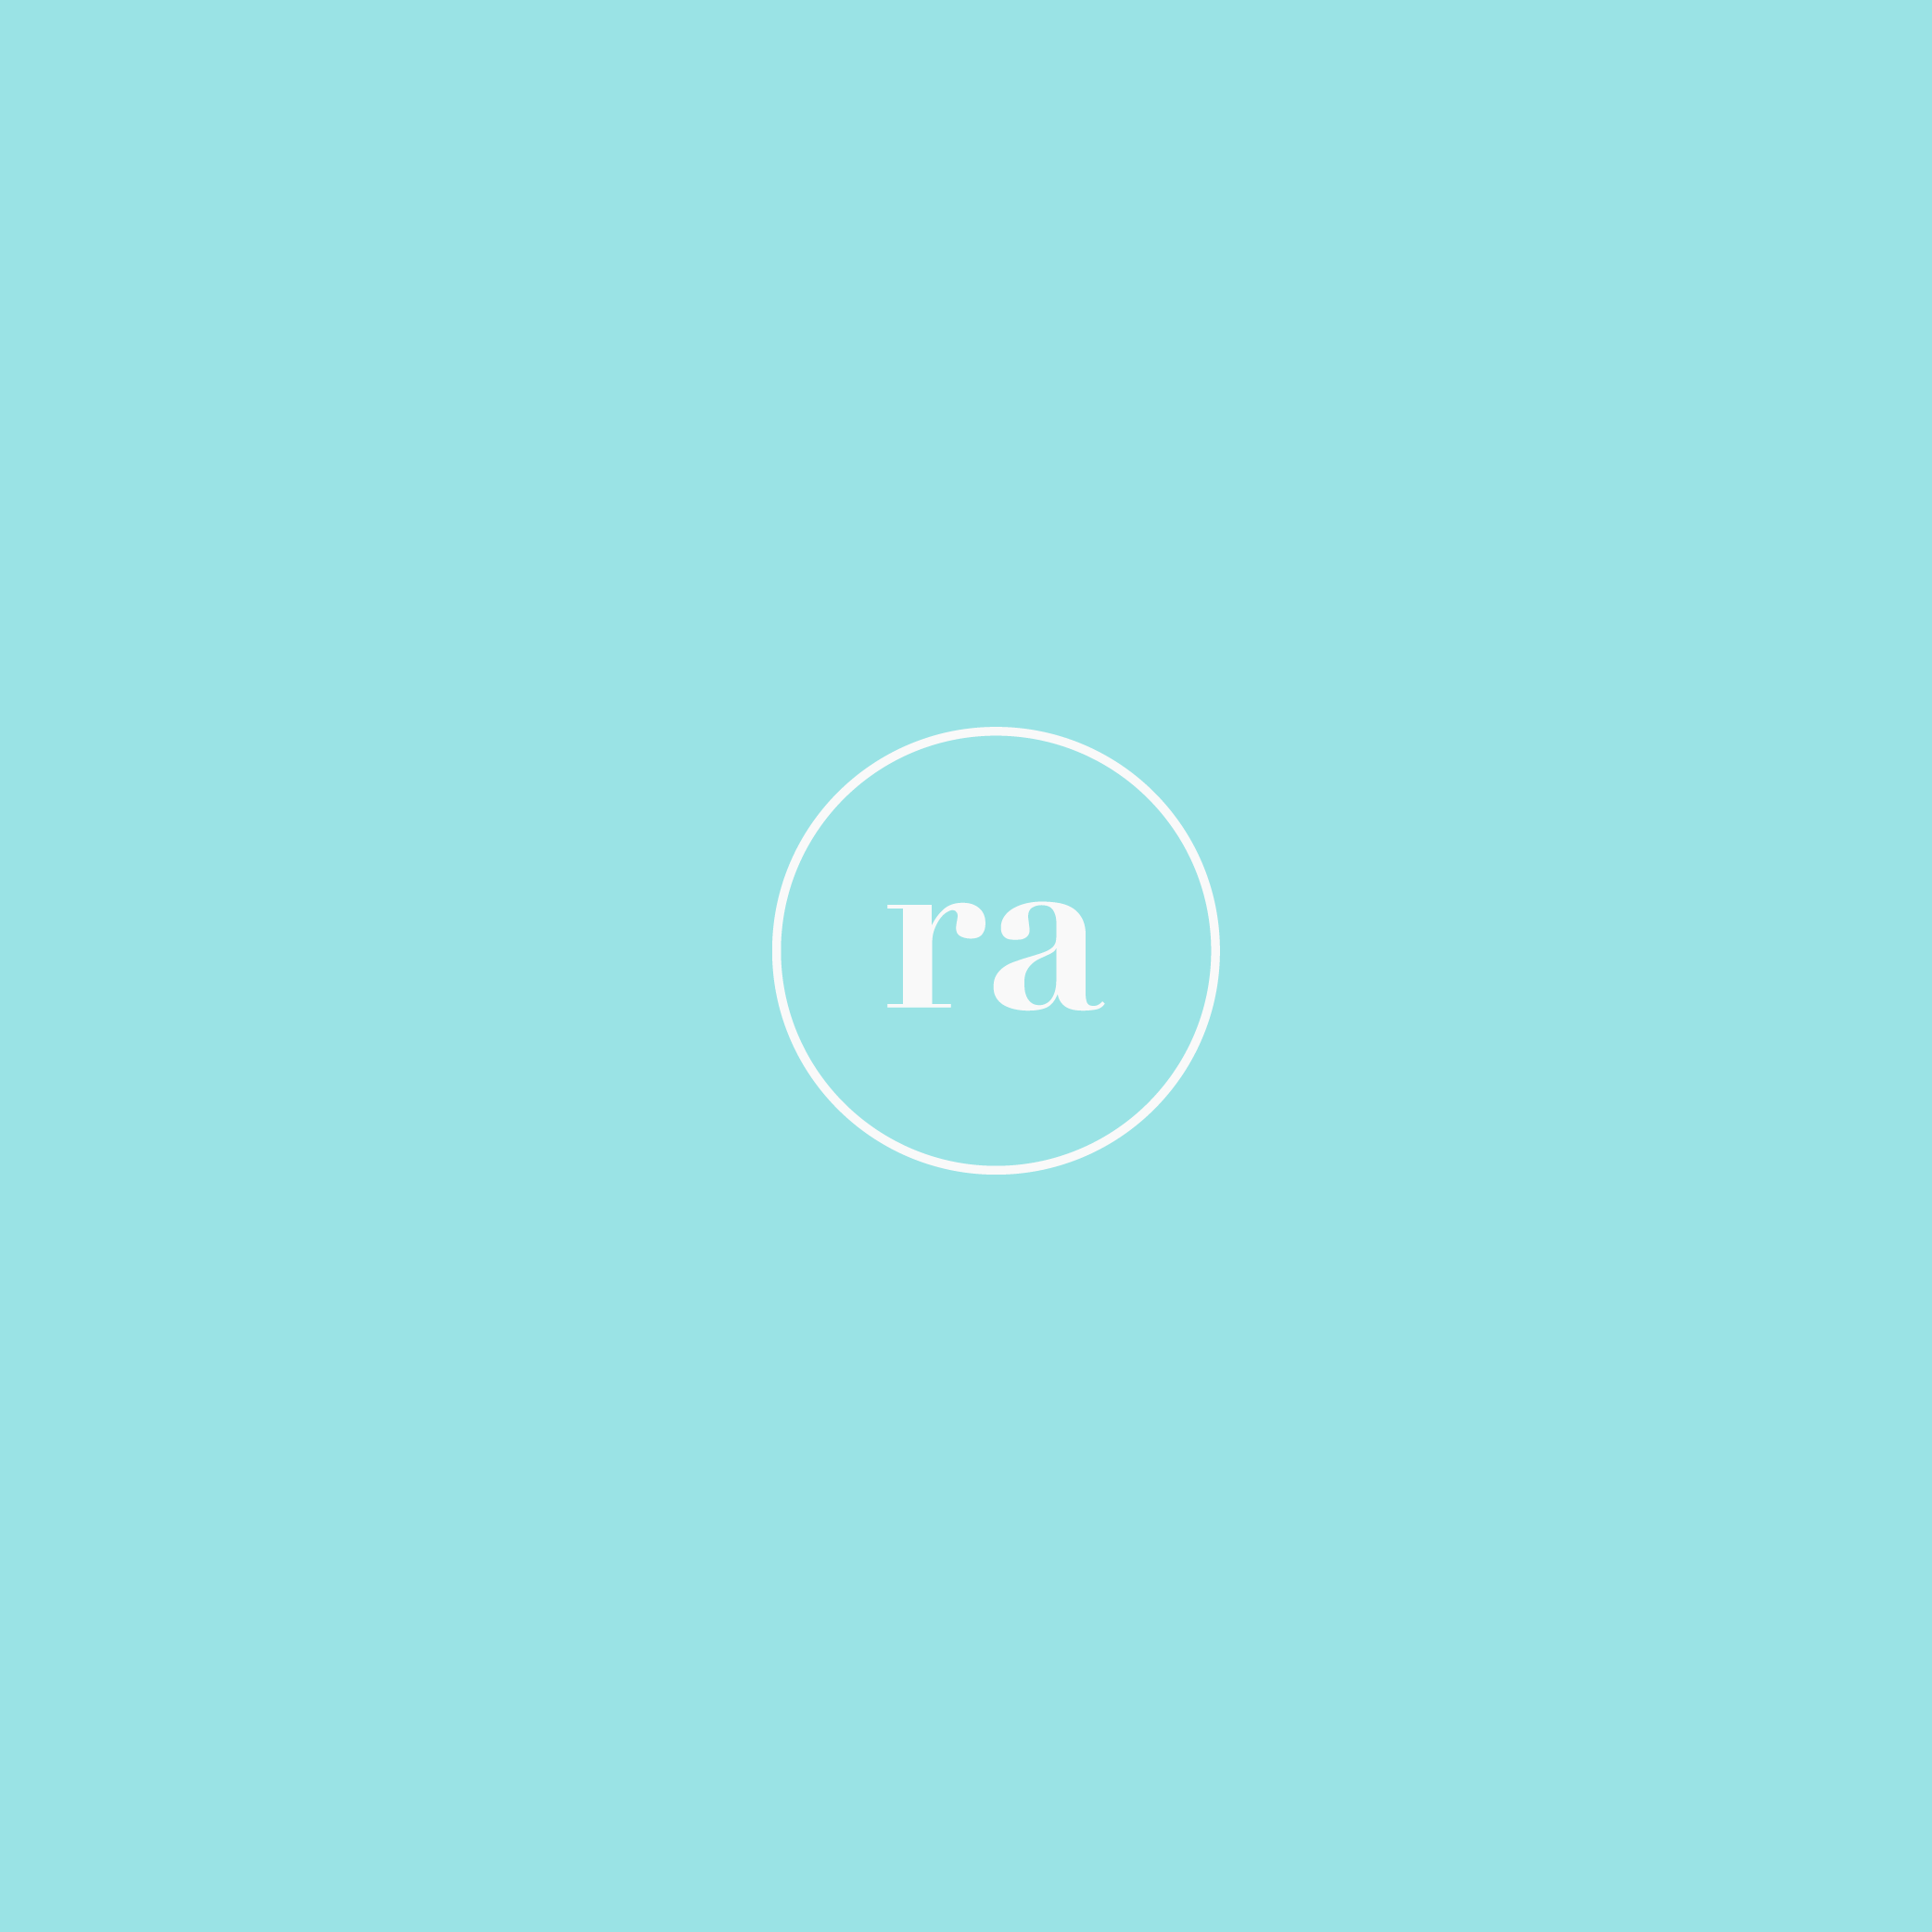 Recreative Apparel monogram in a white outline circle on a bright light blue background